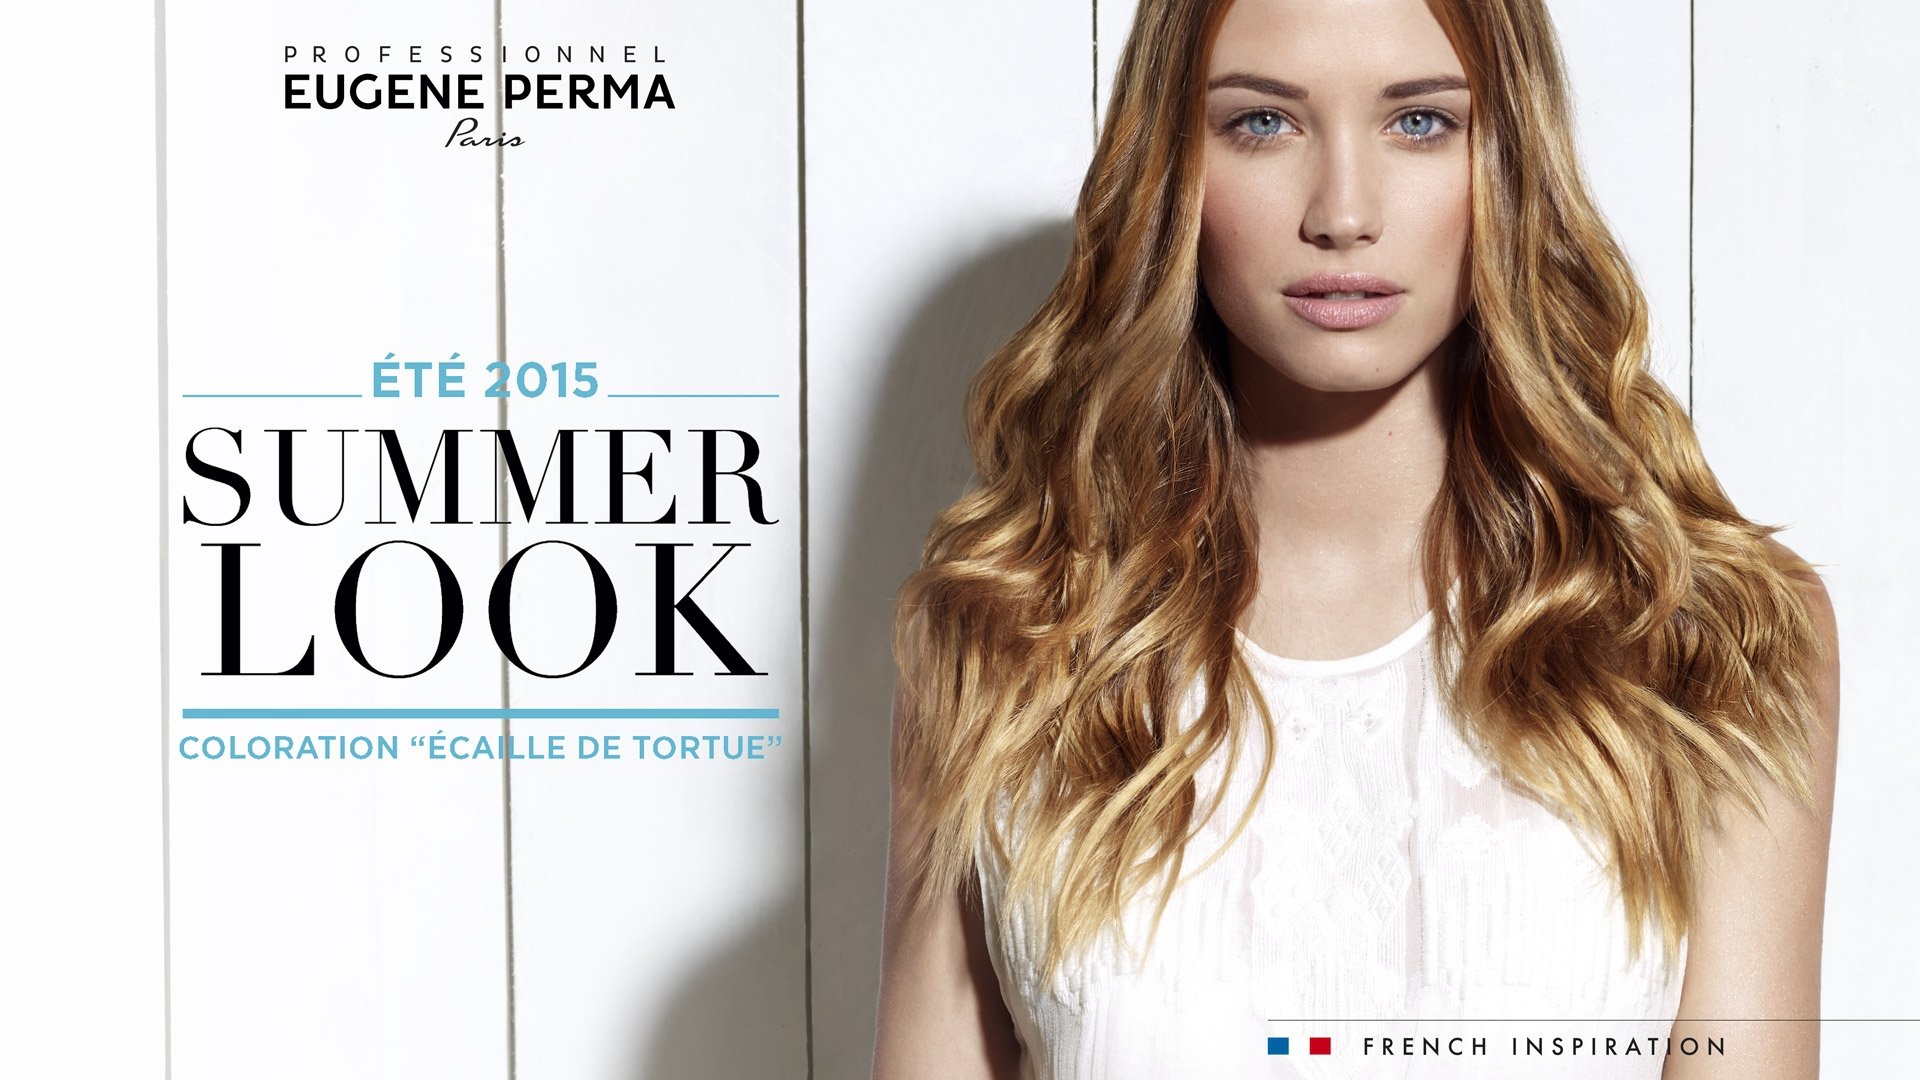 frederic mercier fashion photographer one color eugene perma hair beauty cosmetic make up cheveux beauty cosmetique coloration carmen solaris yzae olaplex essentiel artist petrol hahn summer look